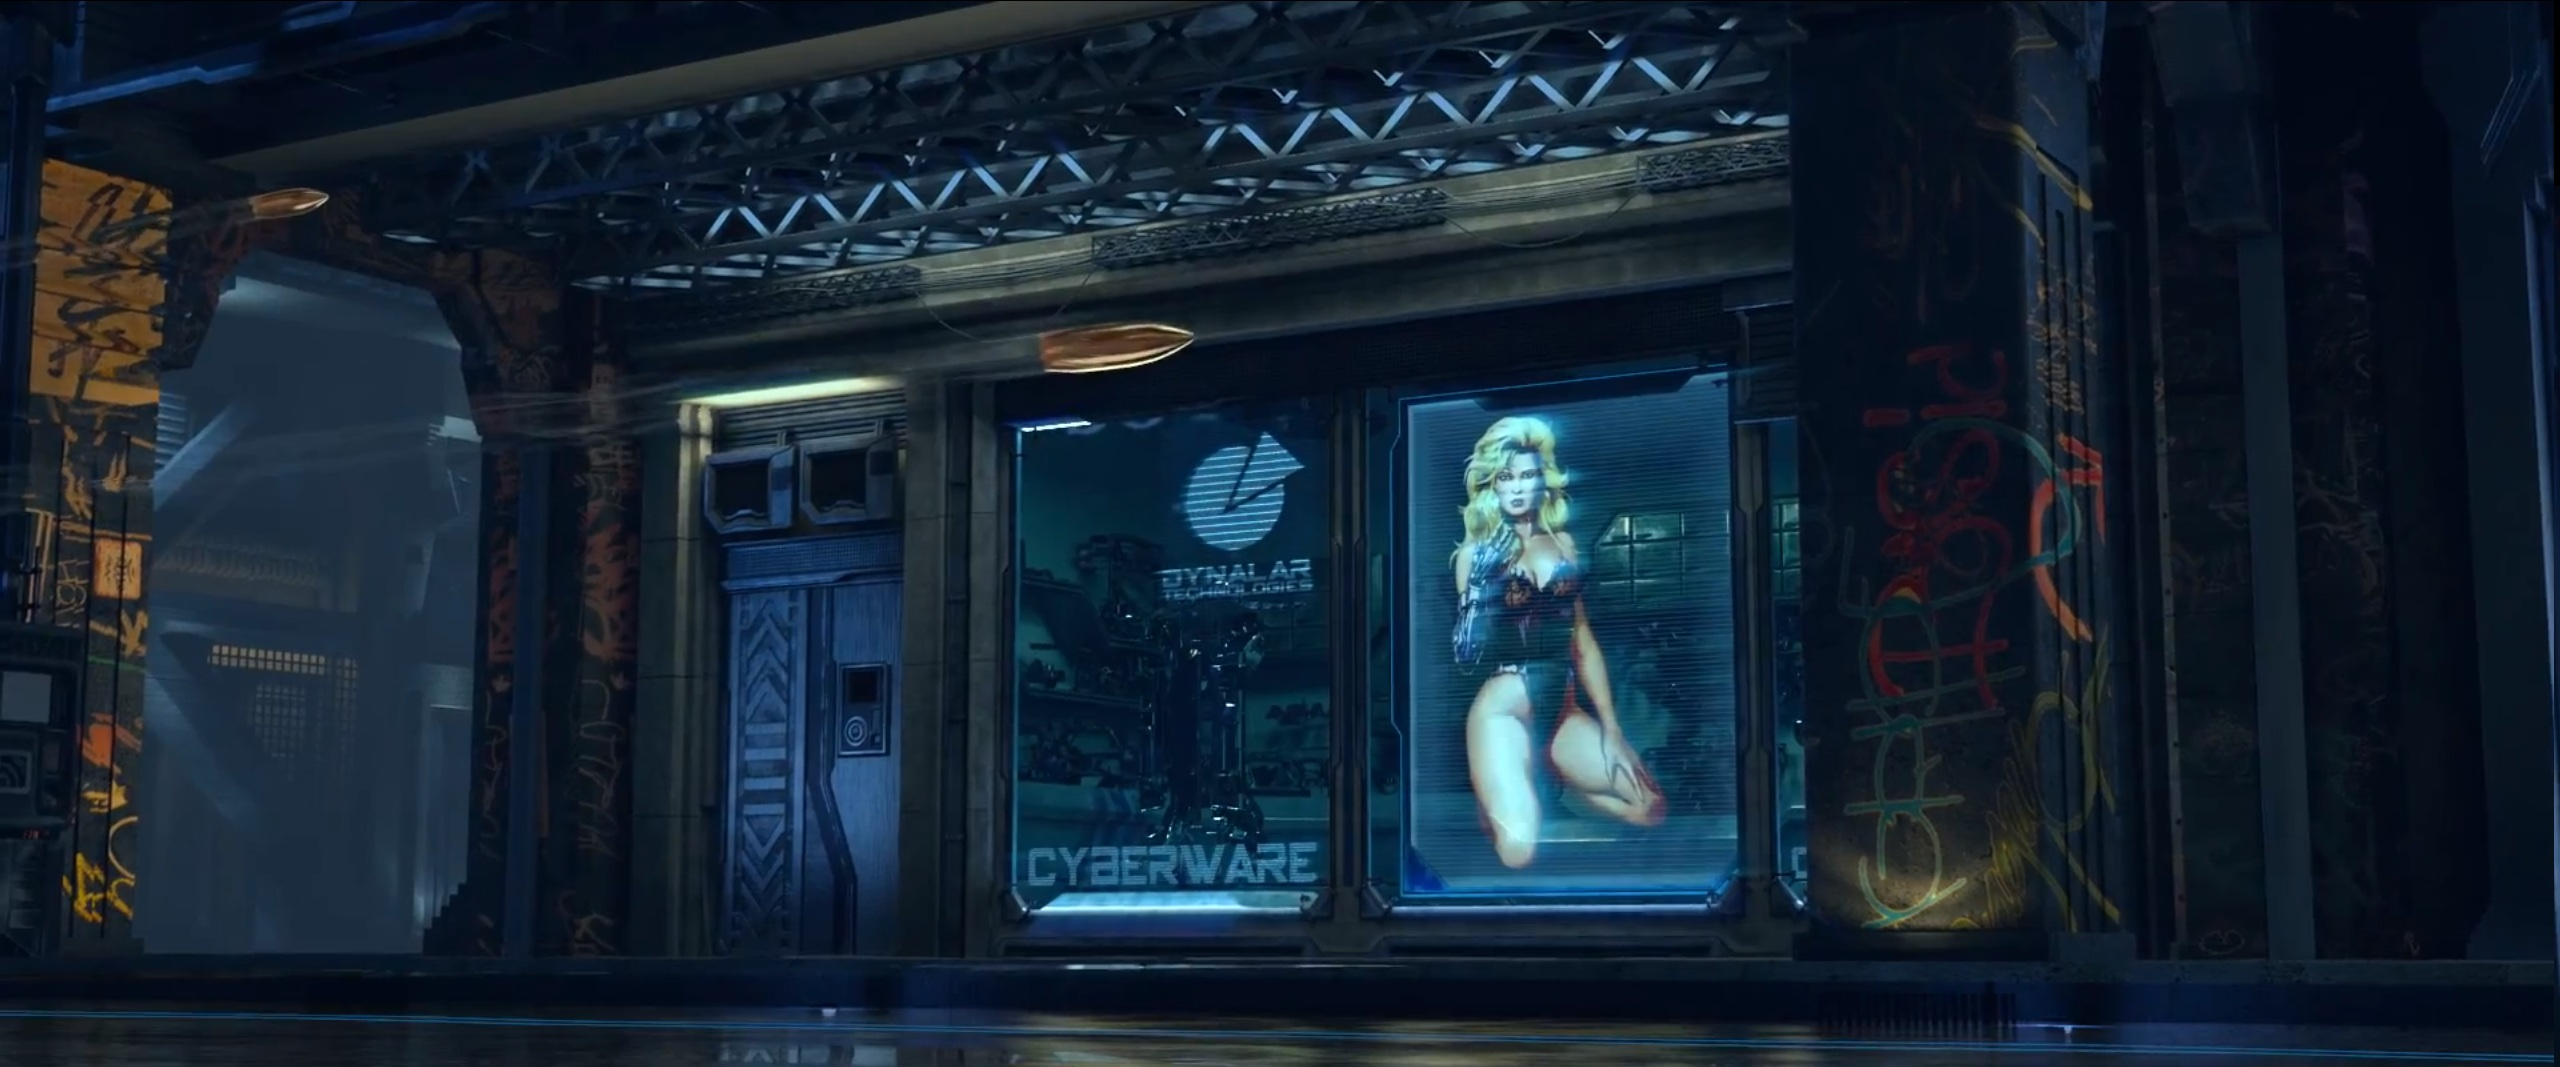 Anime Ps4 Girl Wallpaper Cyberpunk 2077 Aims For Next Gen Consoles And Pcs